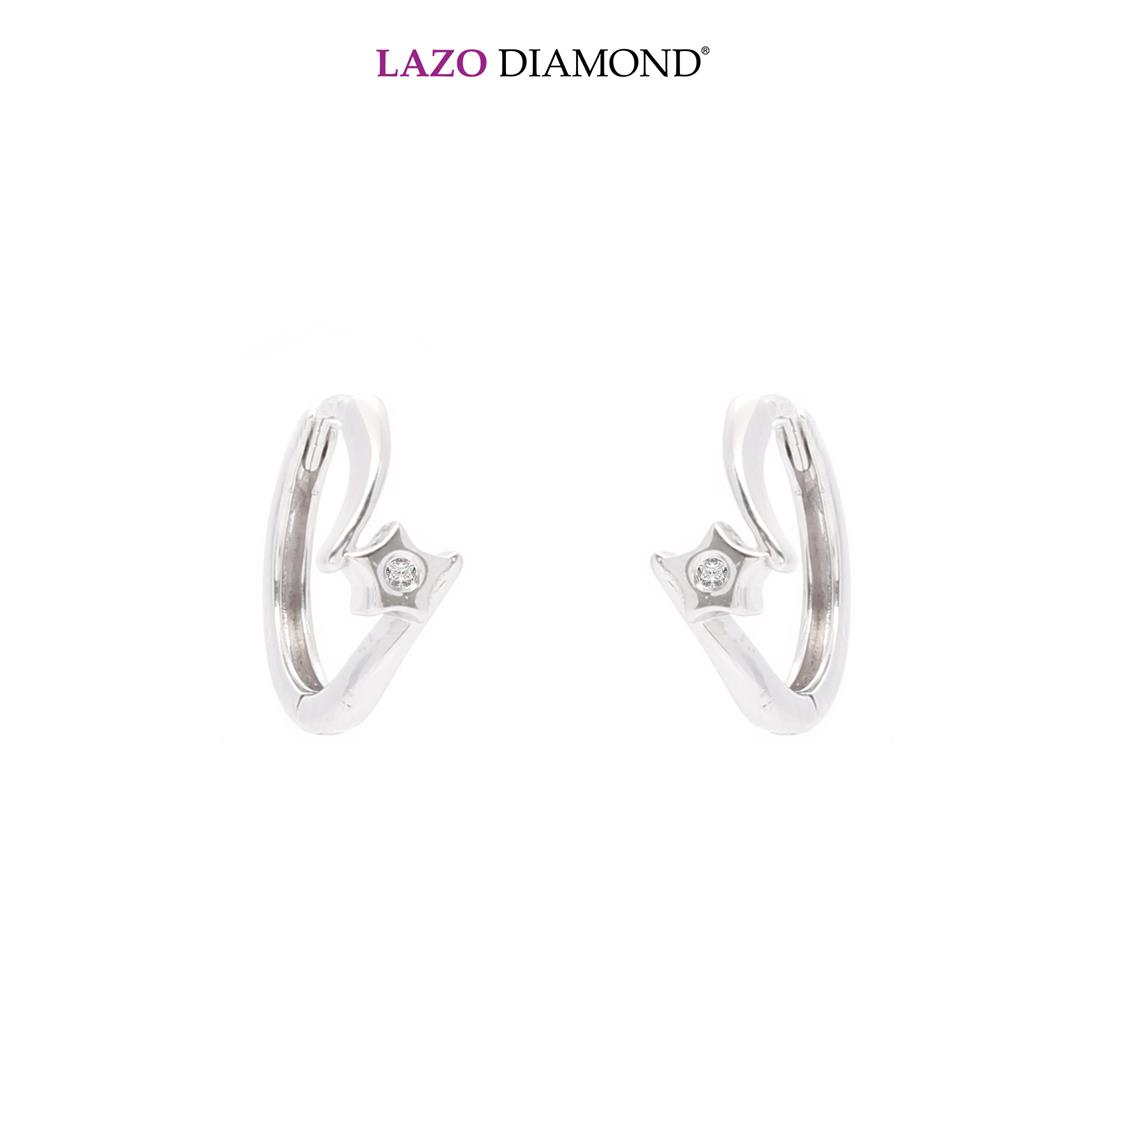 Lazo Diamond Starry 9K White Gold Diamond Earrings - DE0186